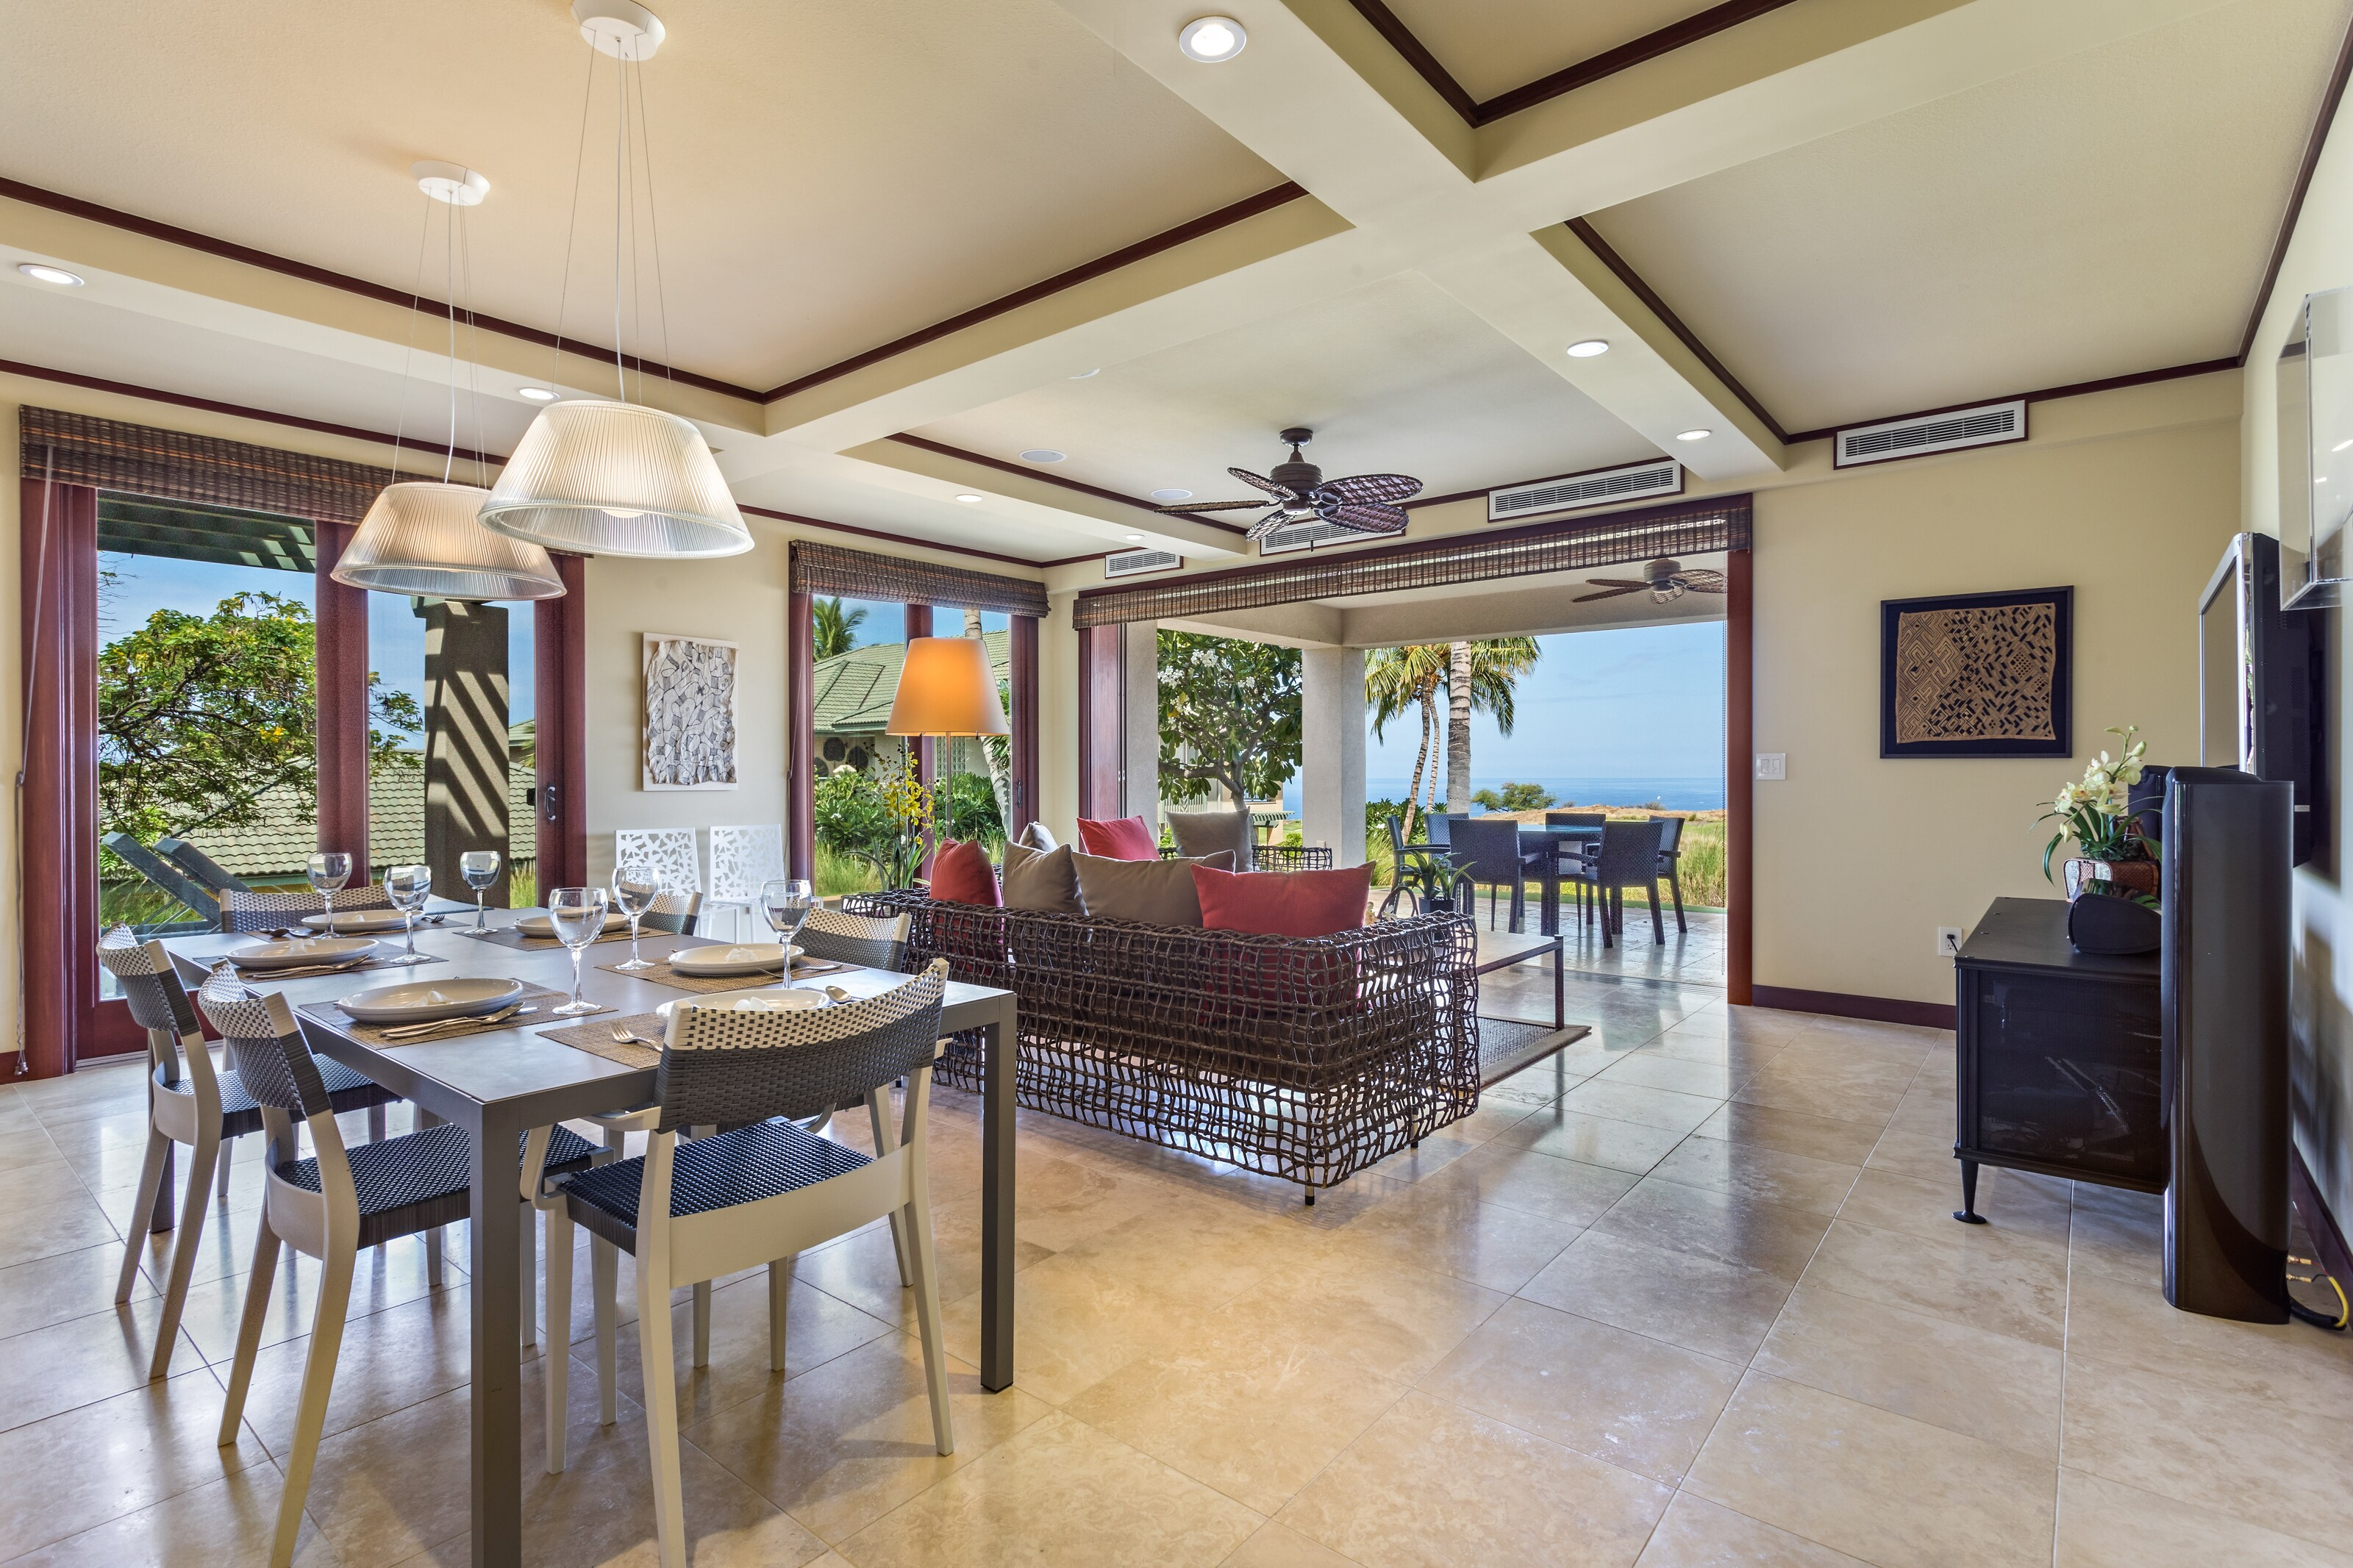 Idyllic Indoor/Outdoor Living with Lanai and Chef's Kitchen